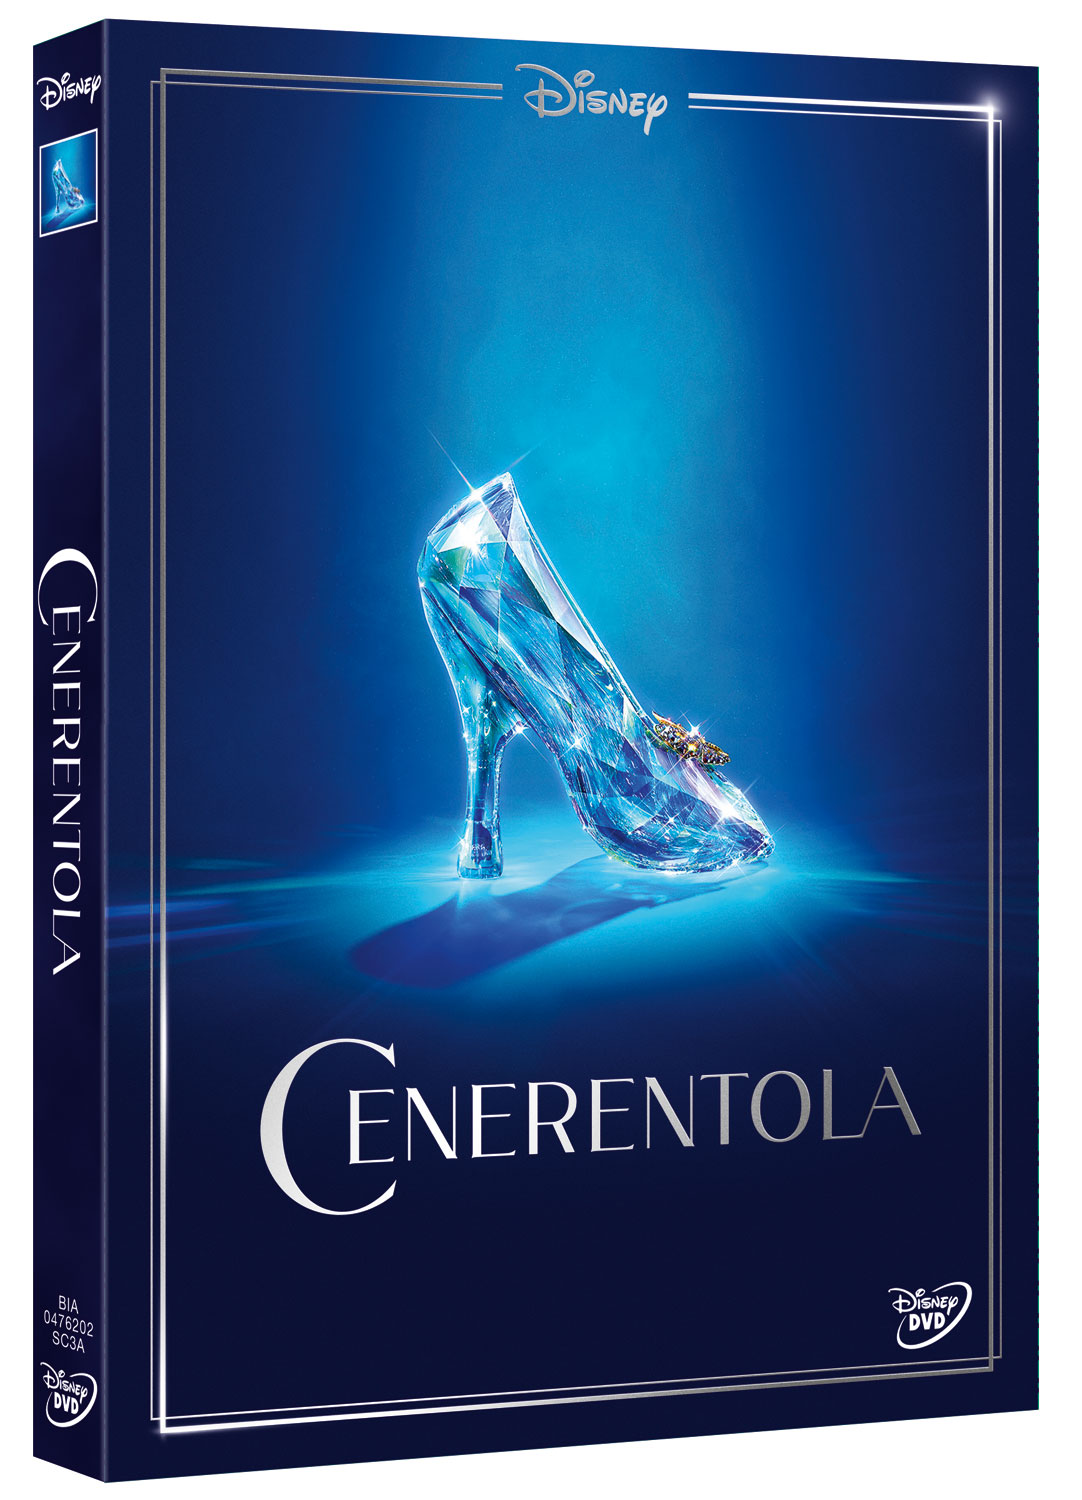 CENERENTOLA (LIVE ACTION) (NEW EDITION) (DVD)